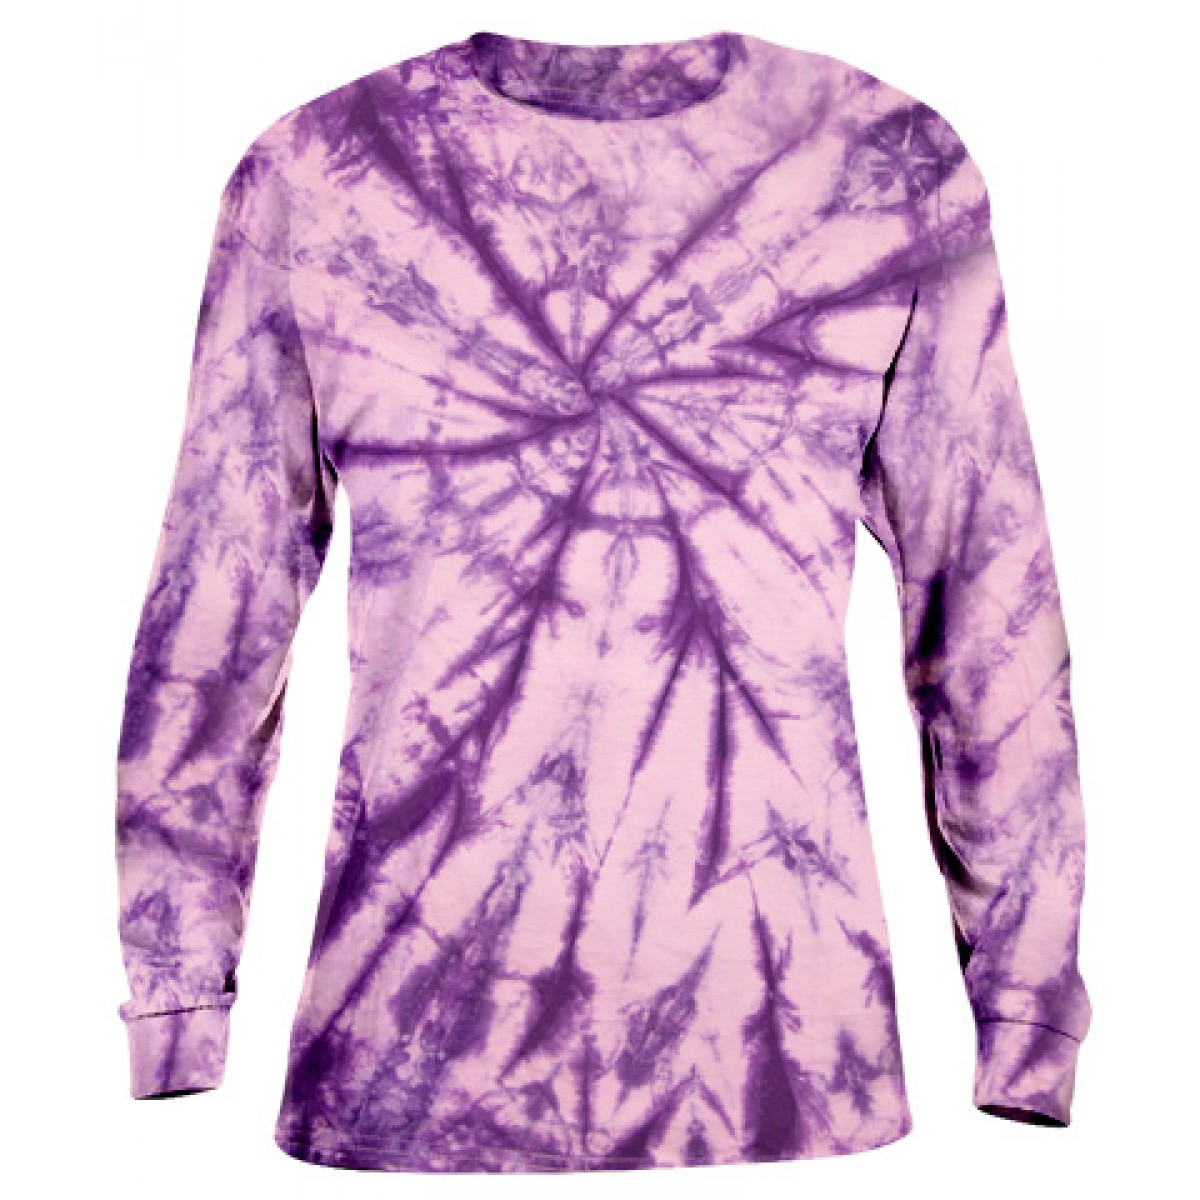 Tie-Dye Long Sleeve Shirt -Purple-XL